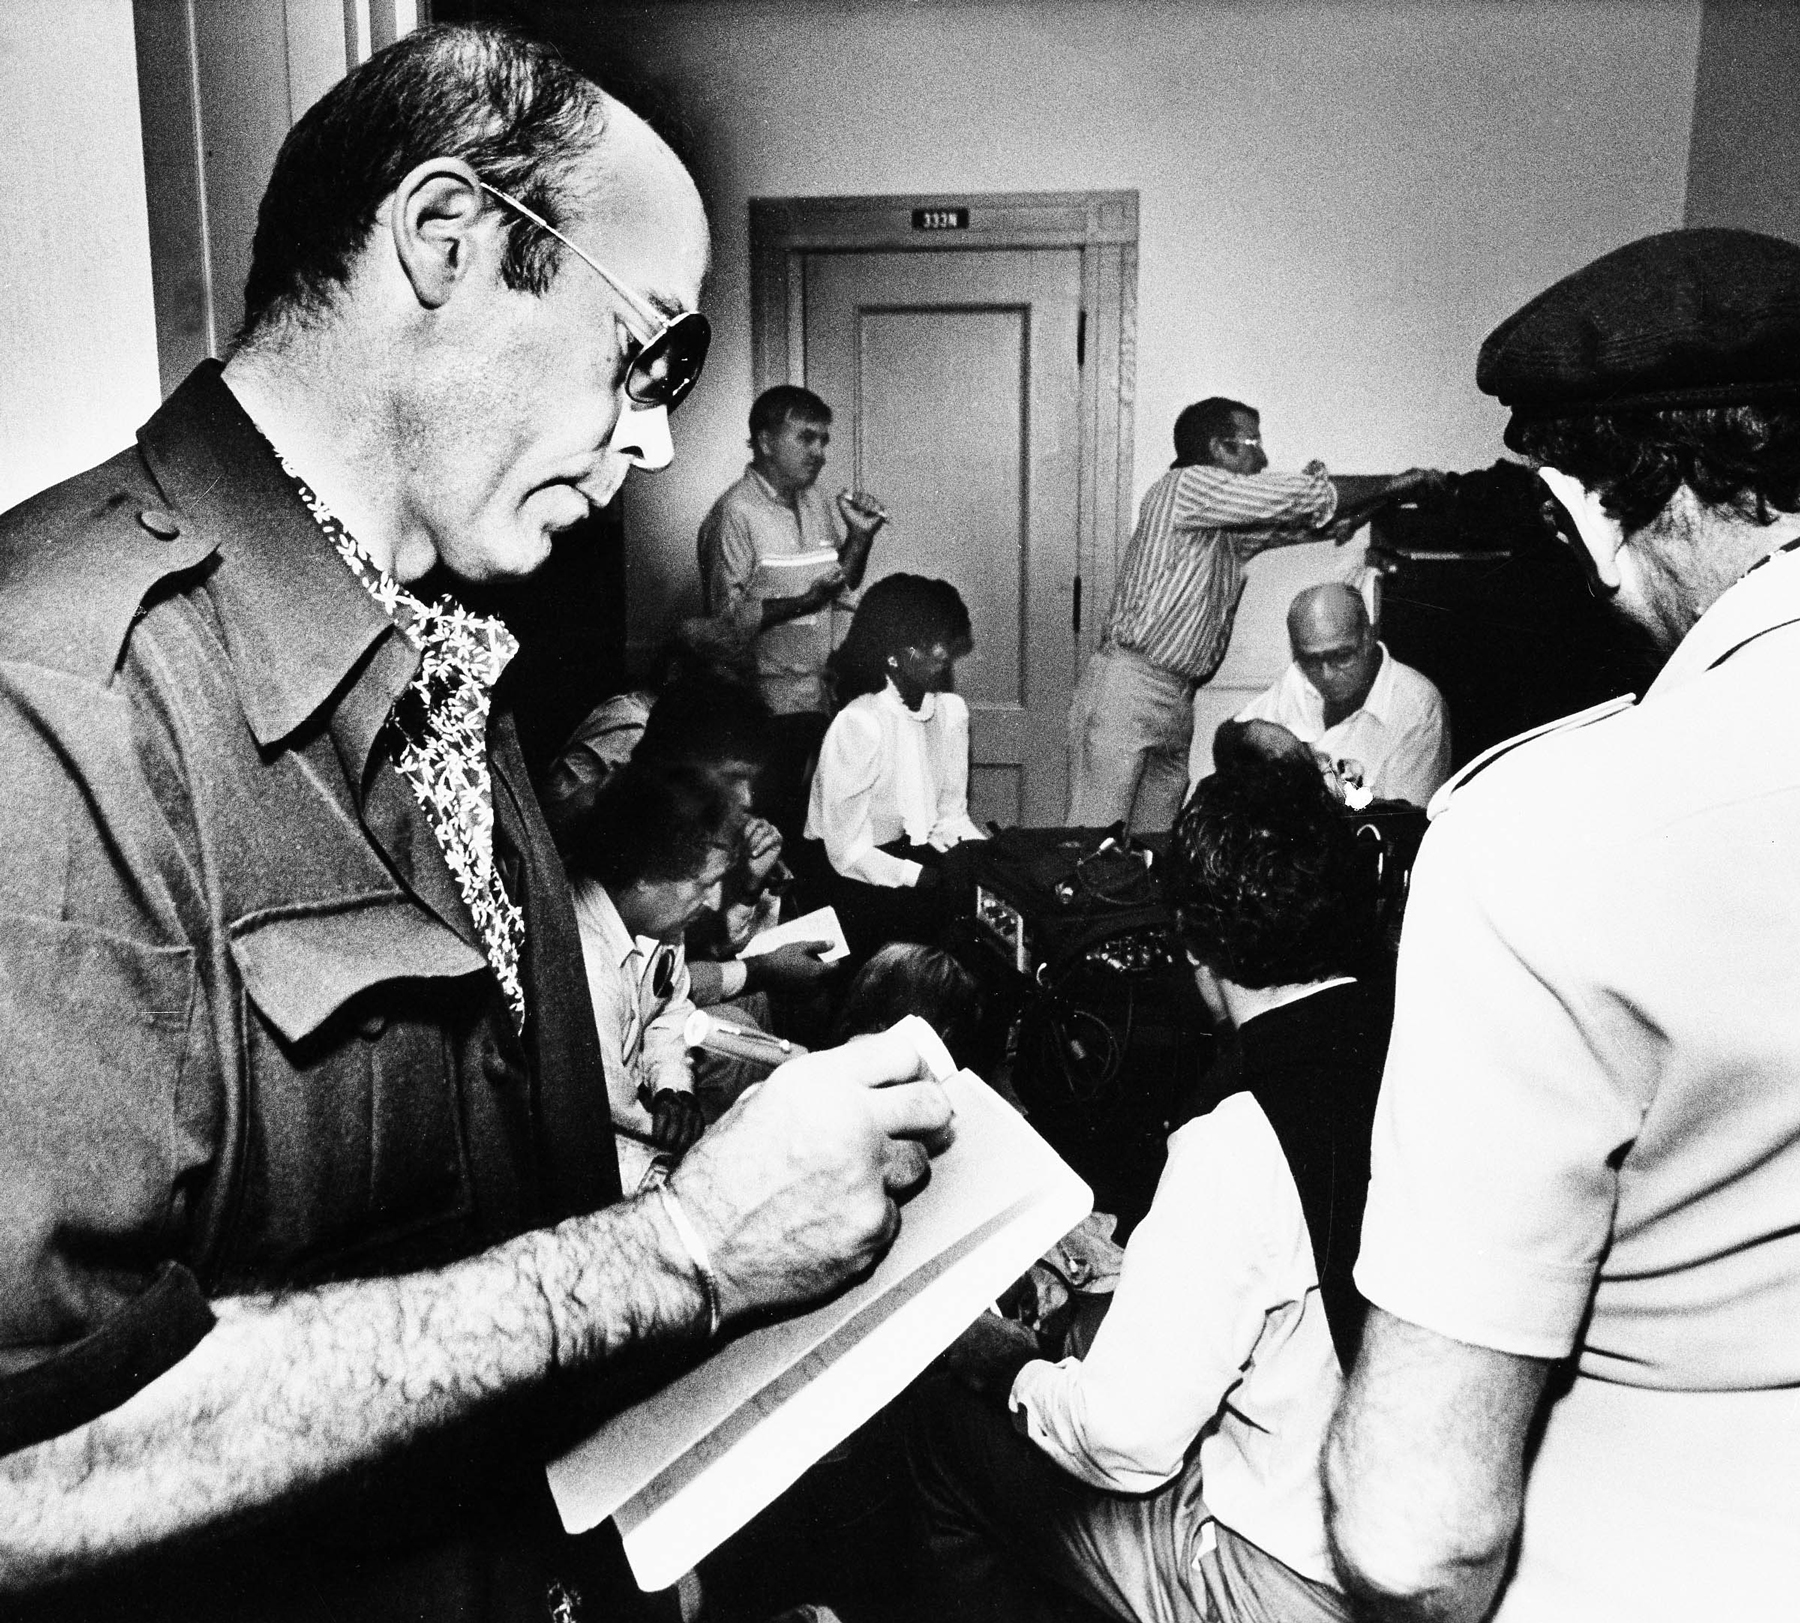 Hunter S. Thompson, Rolling Stone writer and author, checks his notes as he listens to testimony during Pulitzer trial in West Palm Beach, Fla.. November 4, 1982. Reporters from three continents have converged on the courthouse in Palm Beach to cover the trial. (AP Photo/Ray Fairall)